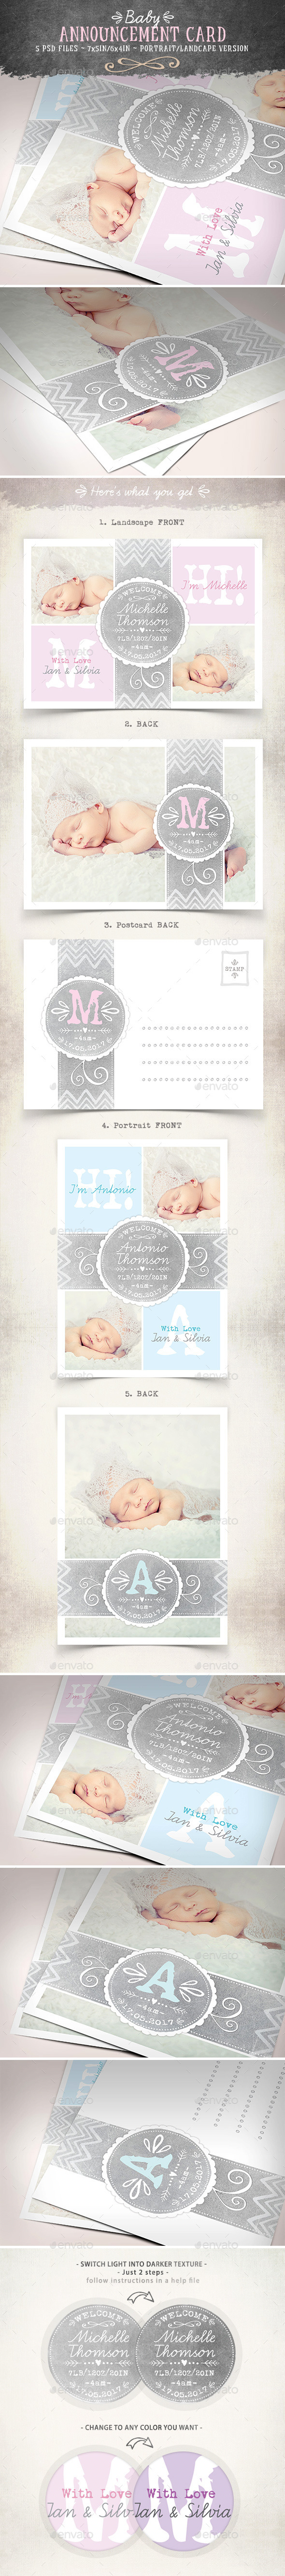 GraphicRiver Swirls Baby Announcement Card Vol.3 9129349